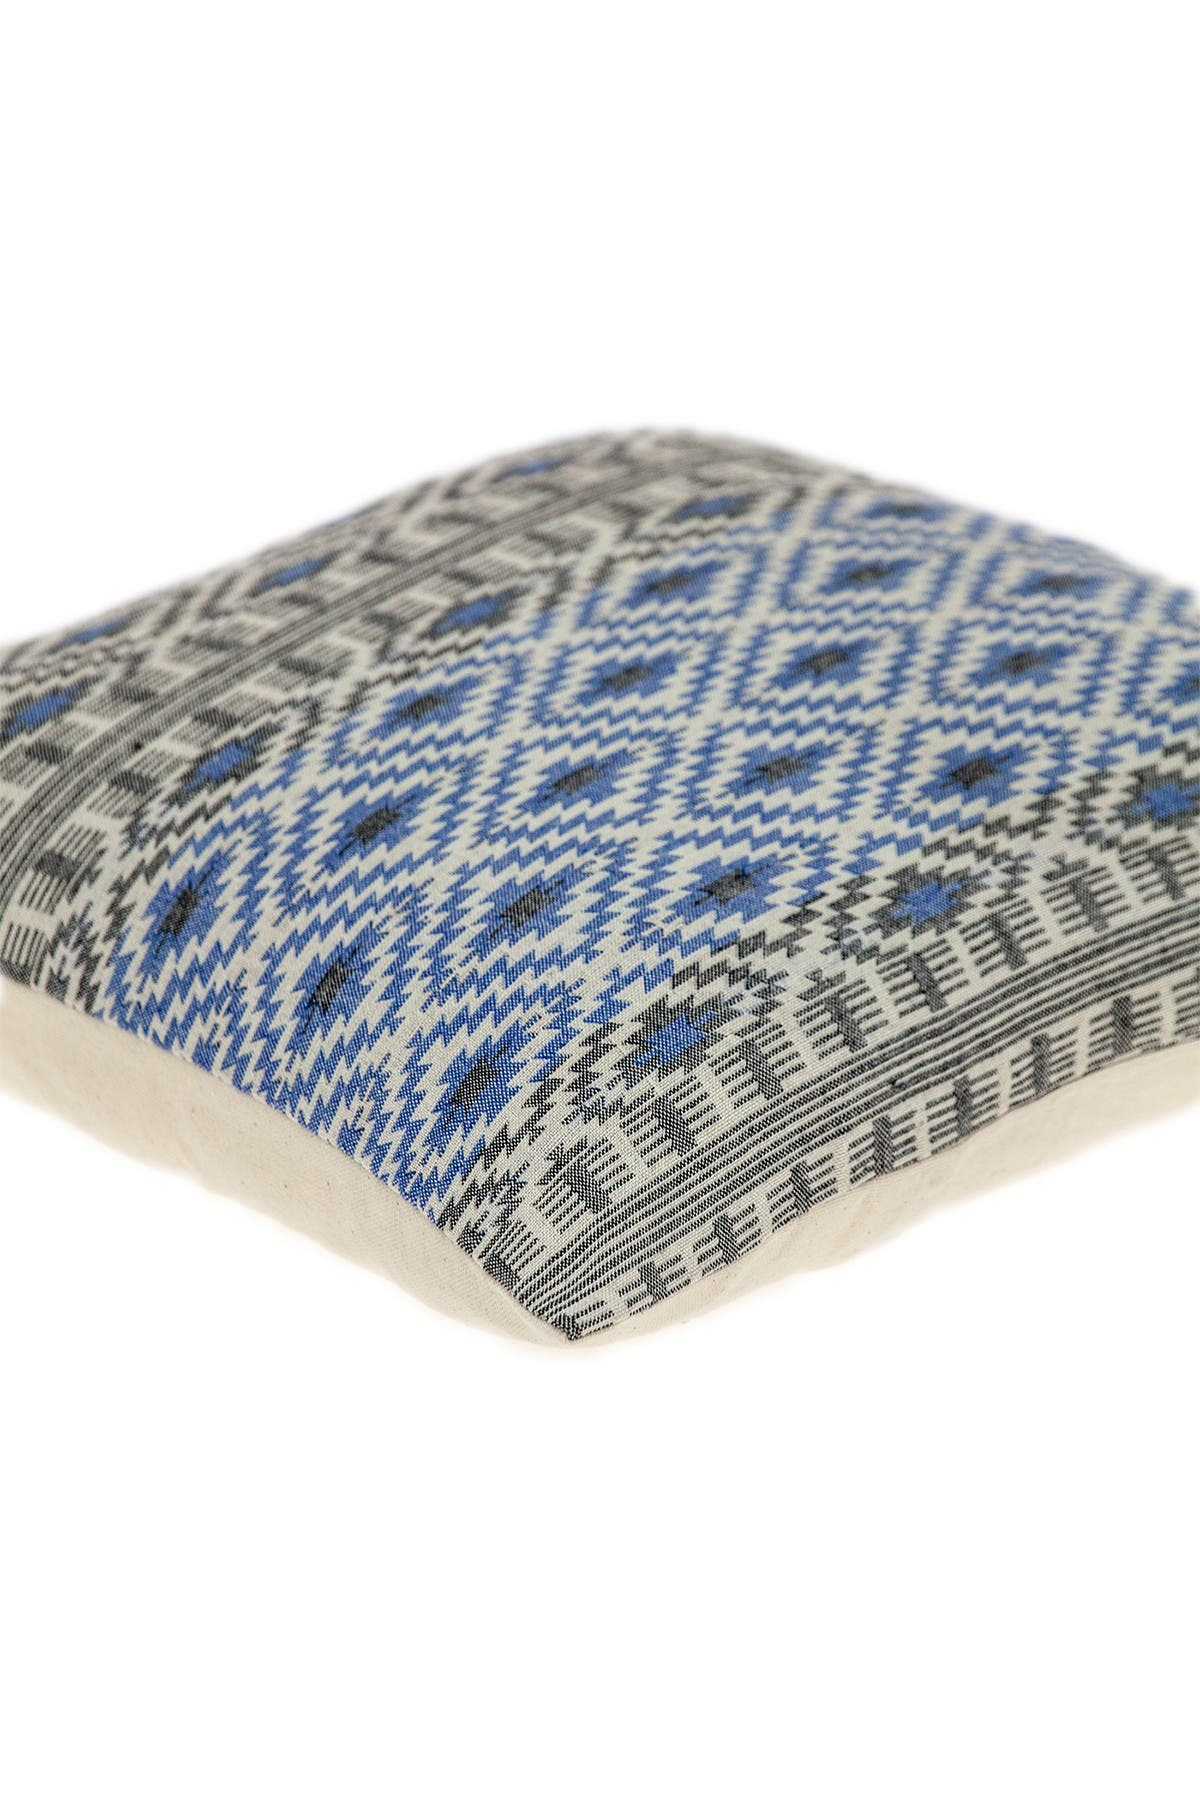 Image of Parkland Collection Chaka Transitional Beige Throw Pillow